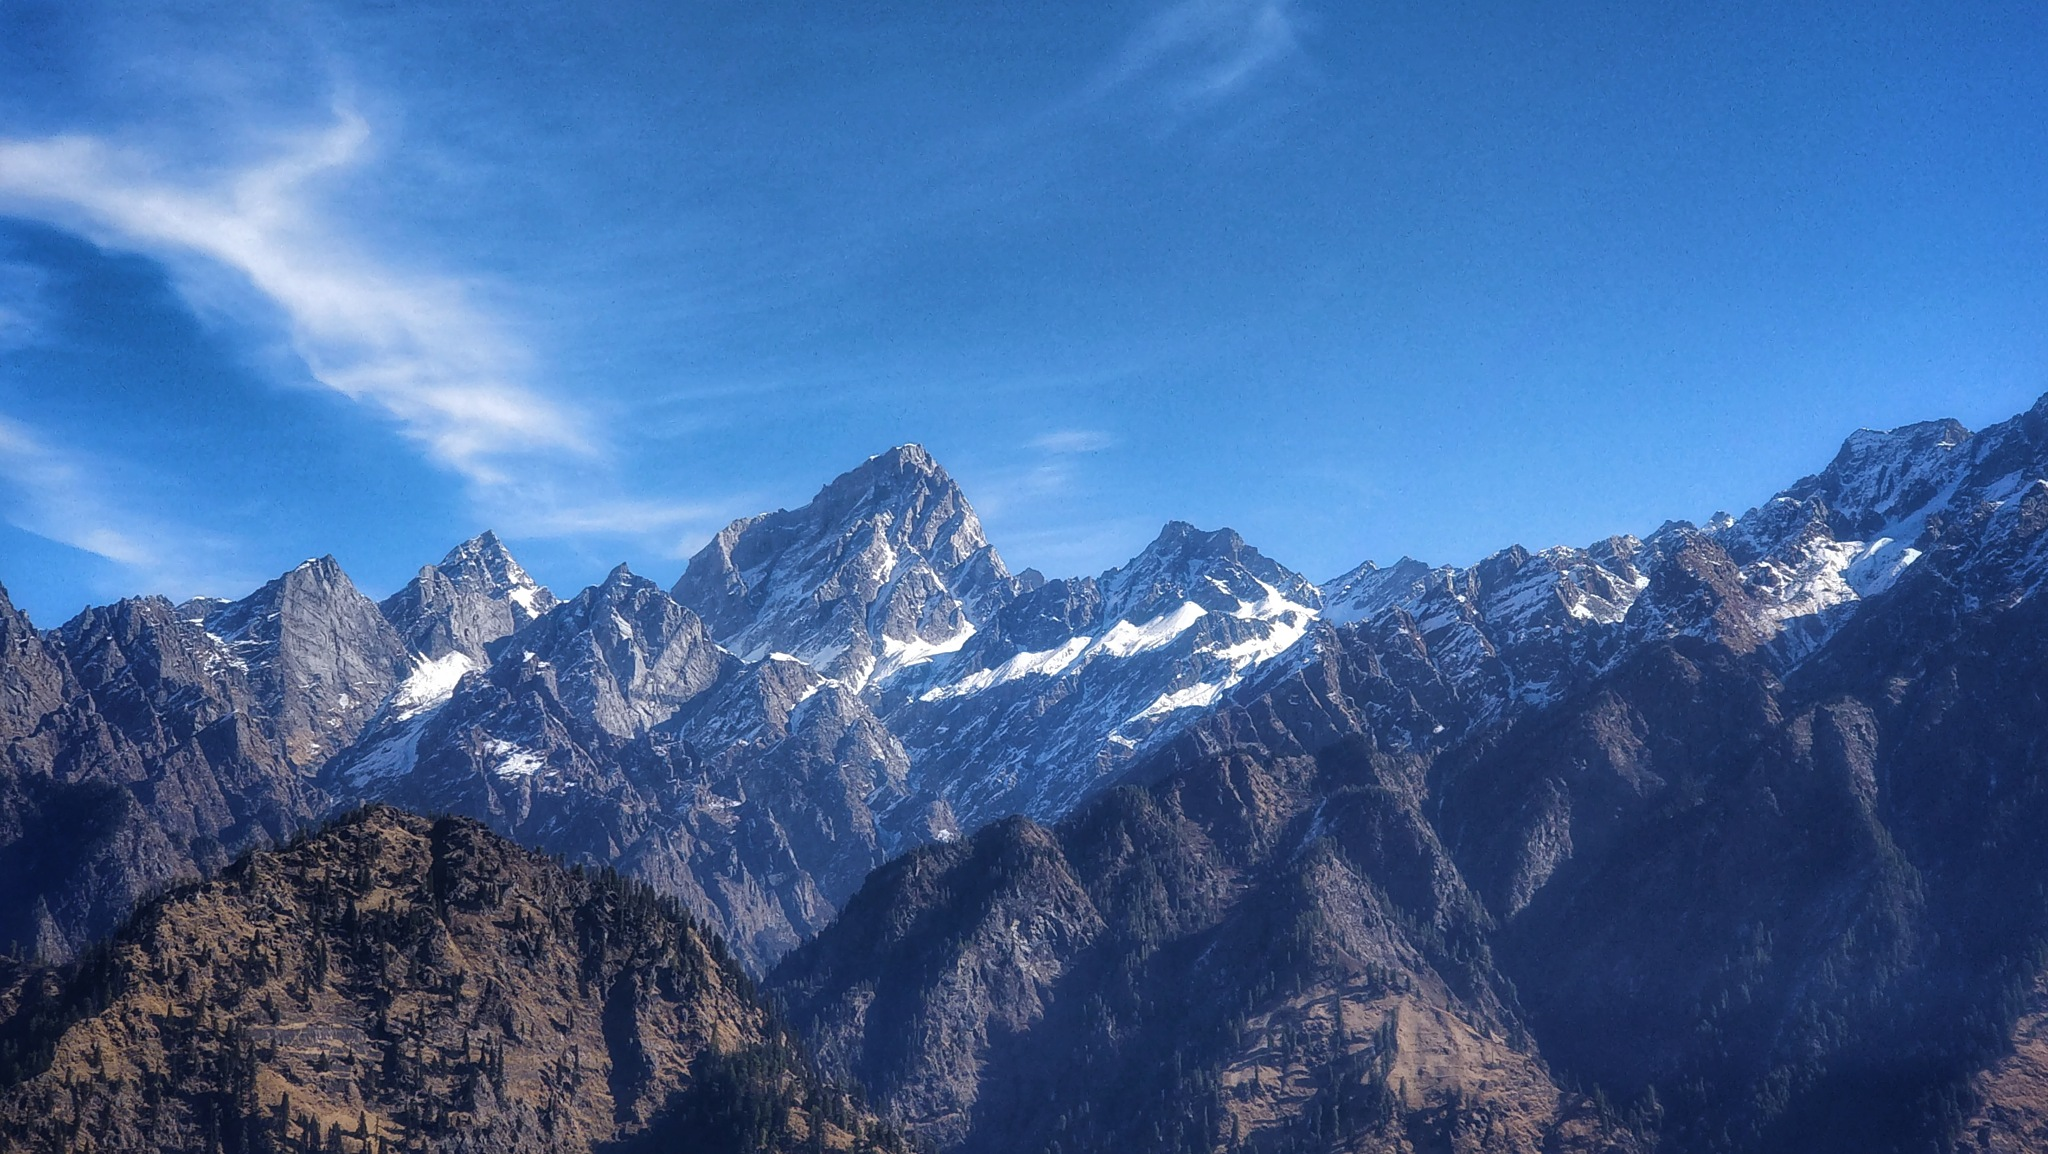 Thr mighty mountains by Aman Chaudhary